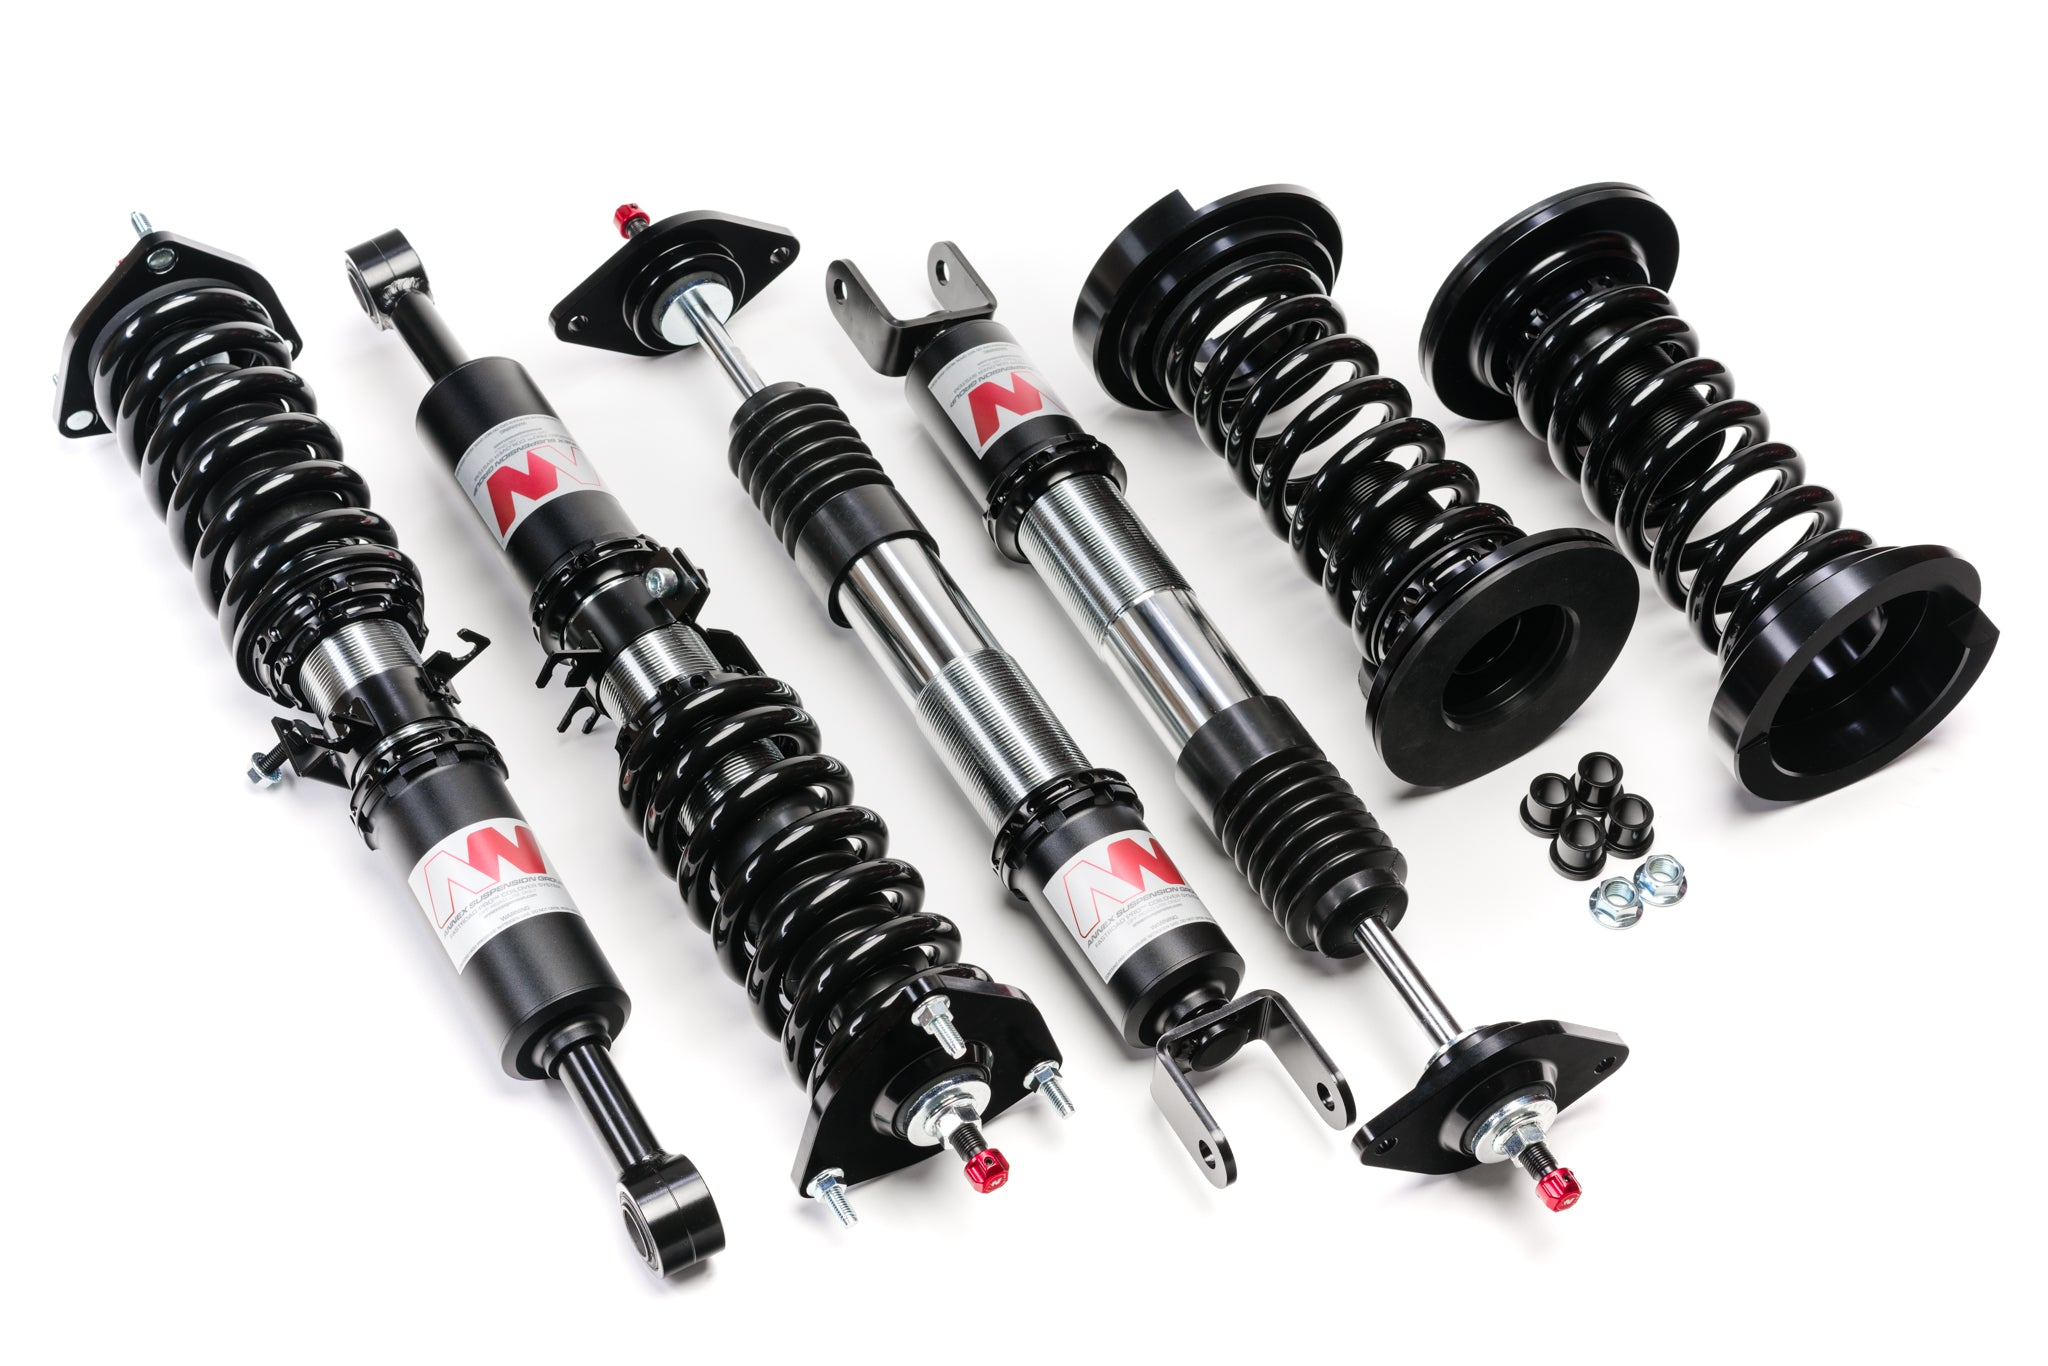 Annex Suspension Kits Fastroad Pro Coilovers Infiniti 2008-2013 G37 (RWD) for Daily Driving (Street Driving and Track Comfort) 2008 2009 2010 2011 2012 2013